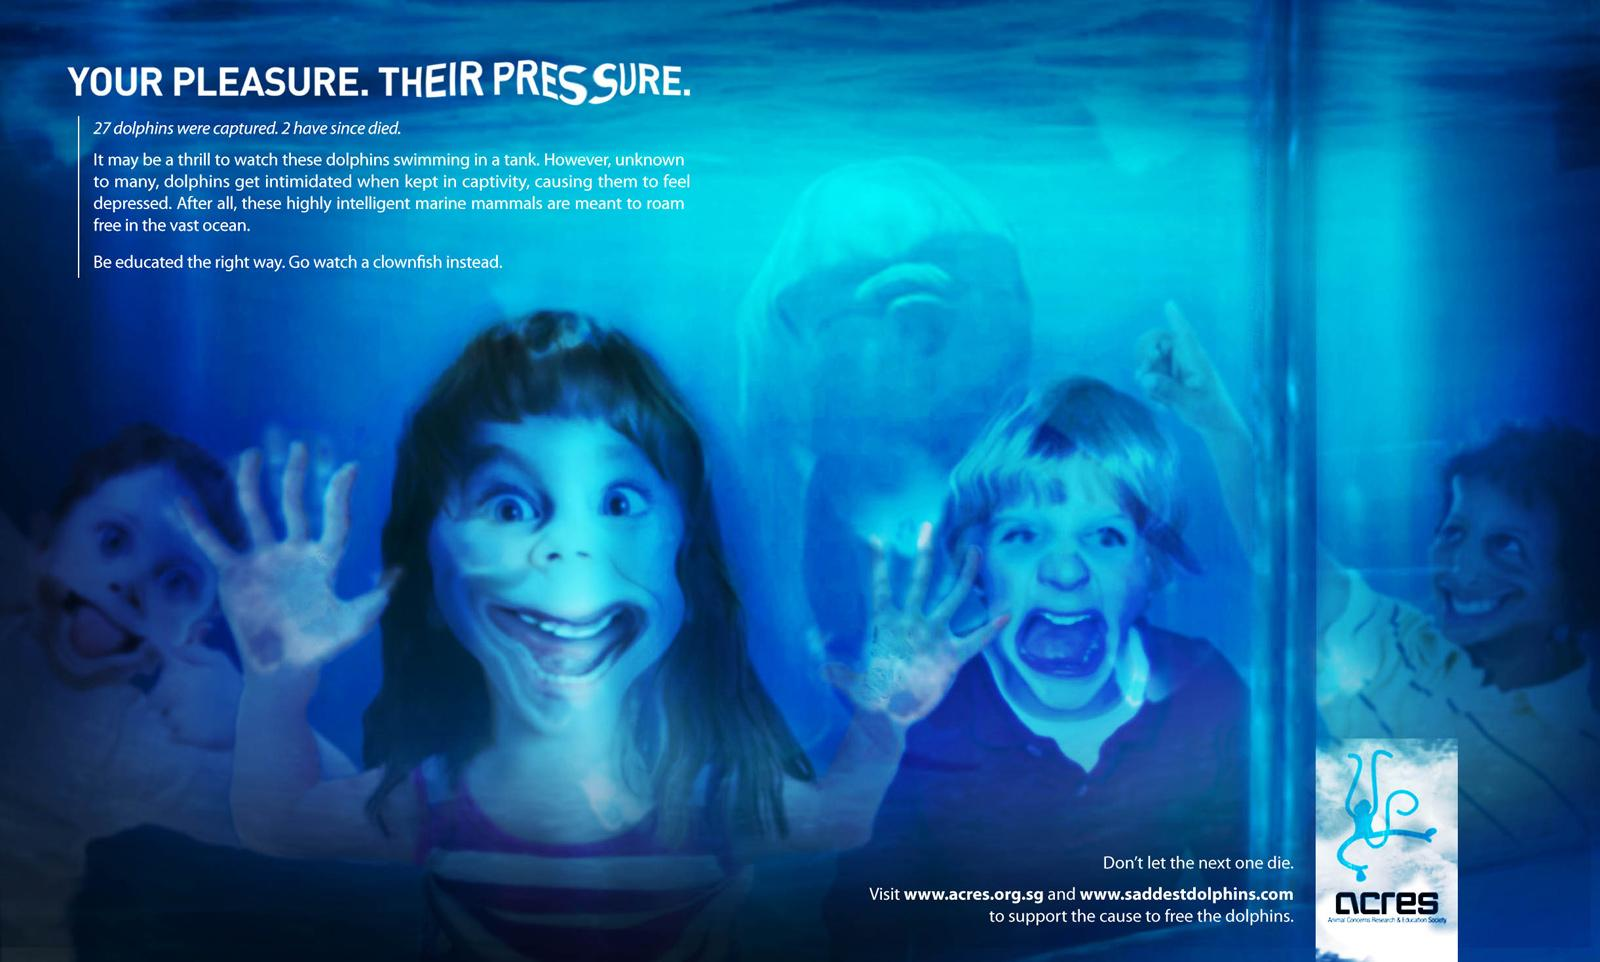 ACRES Print Ad -  Please Let The Dolphins Go